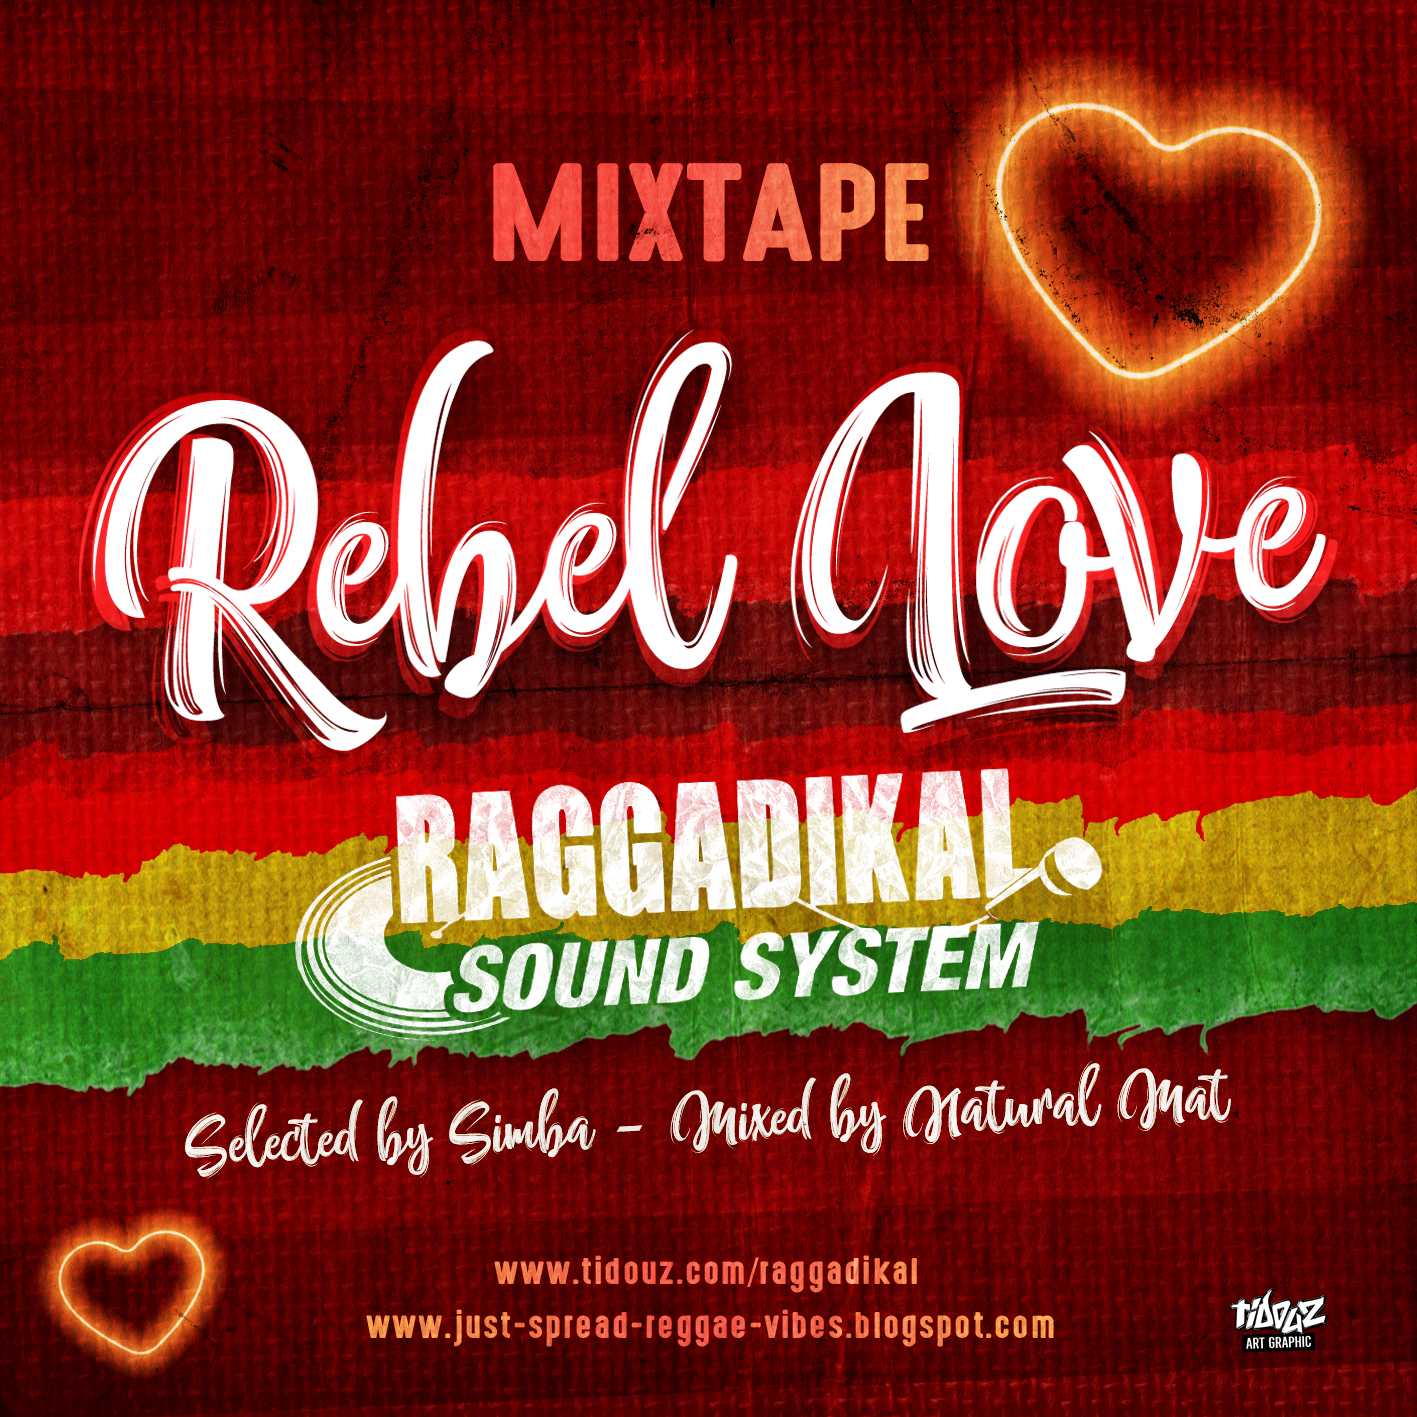 Download Songs Of Simba 2018: Just Spread Reggae Vibes By Simba